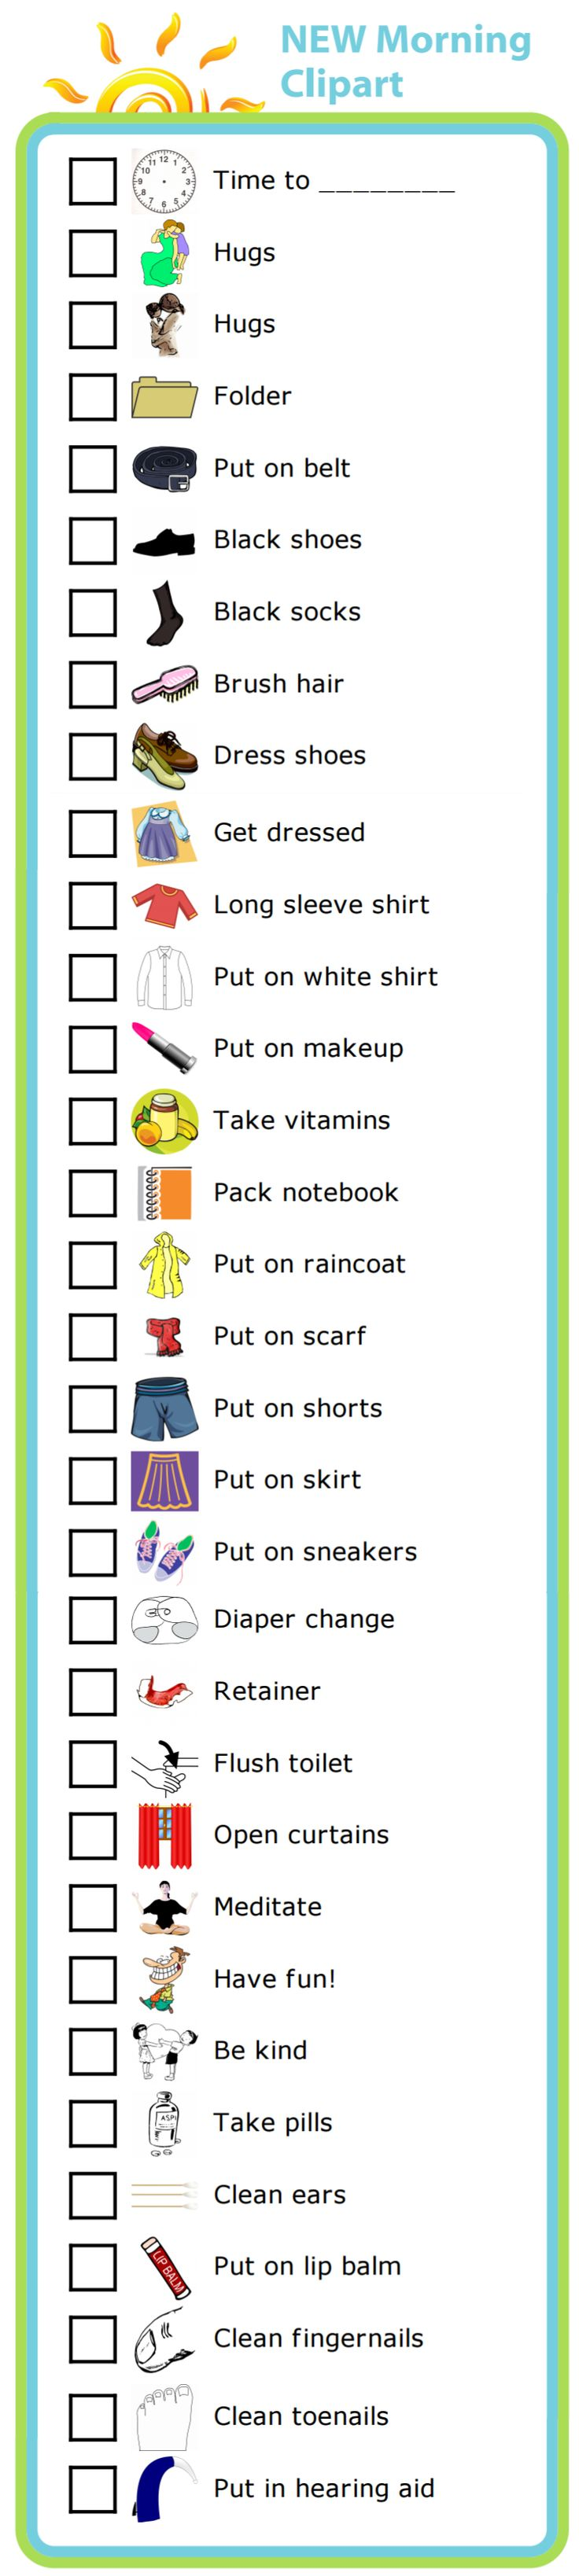 Here are 33 new pictures you can use to create a morning routine checklist. The pictures make it easy for big and little kids to know what needs to be done next. And you will stop being a drill sergeant shouting out orders!